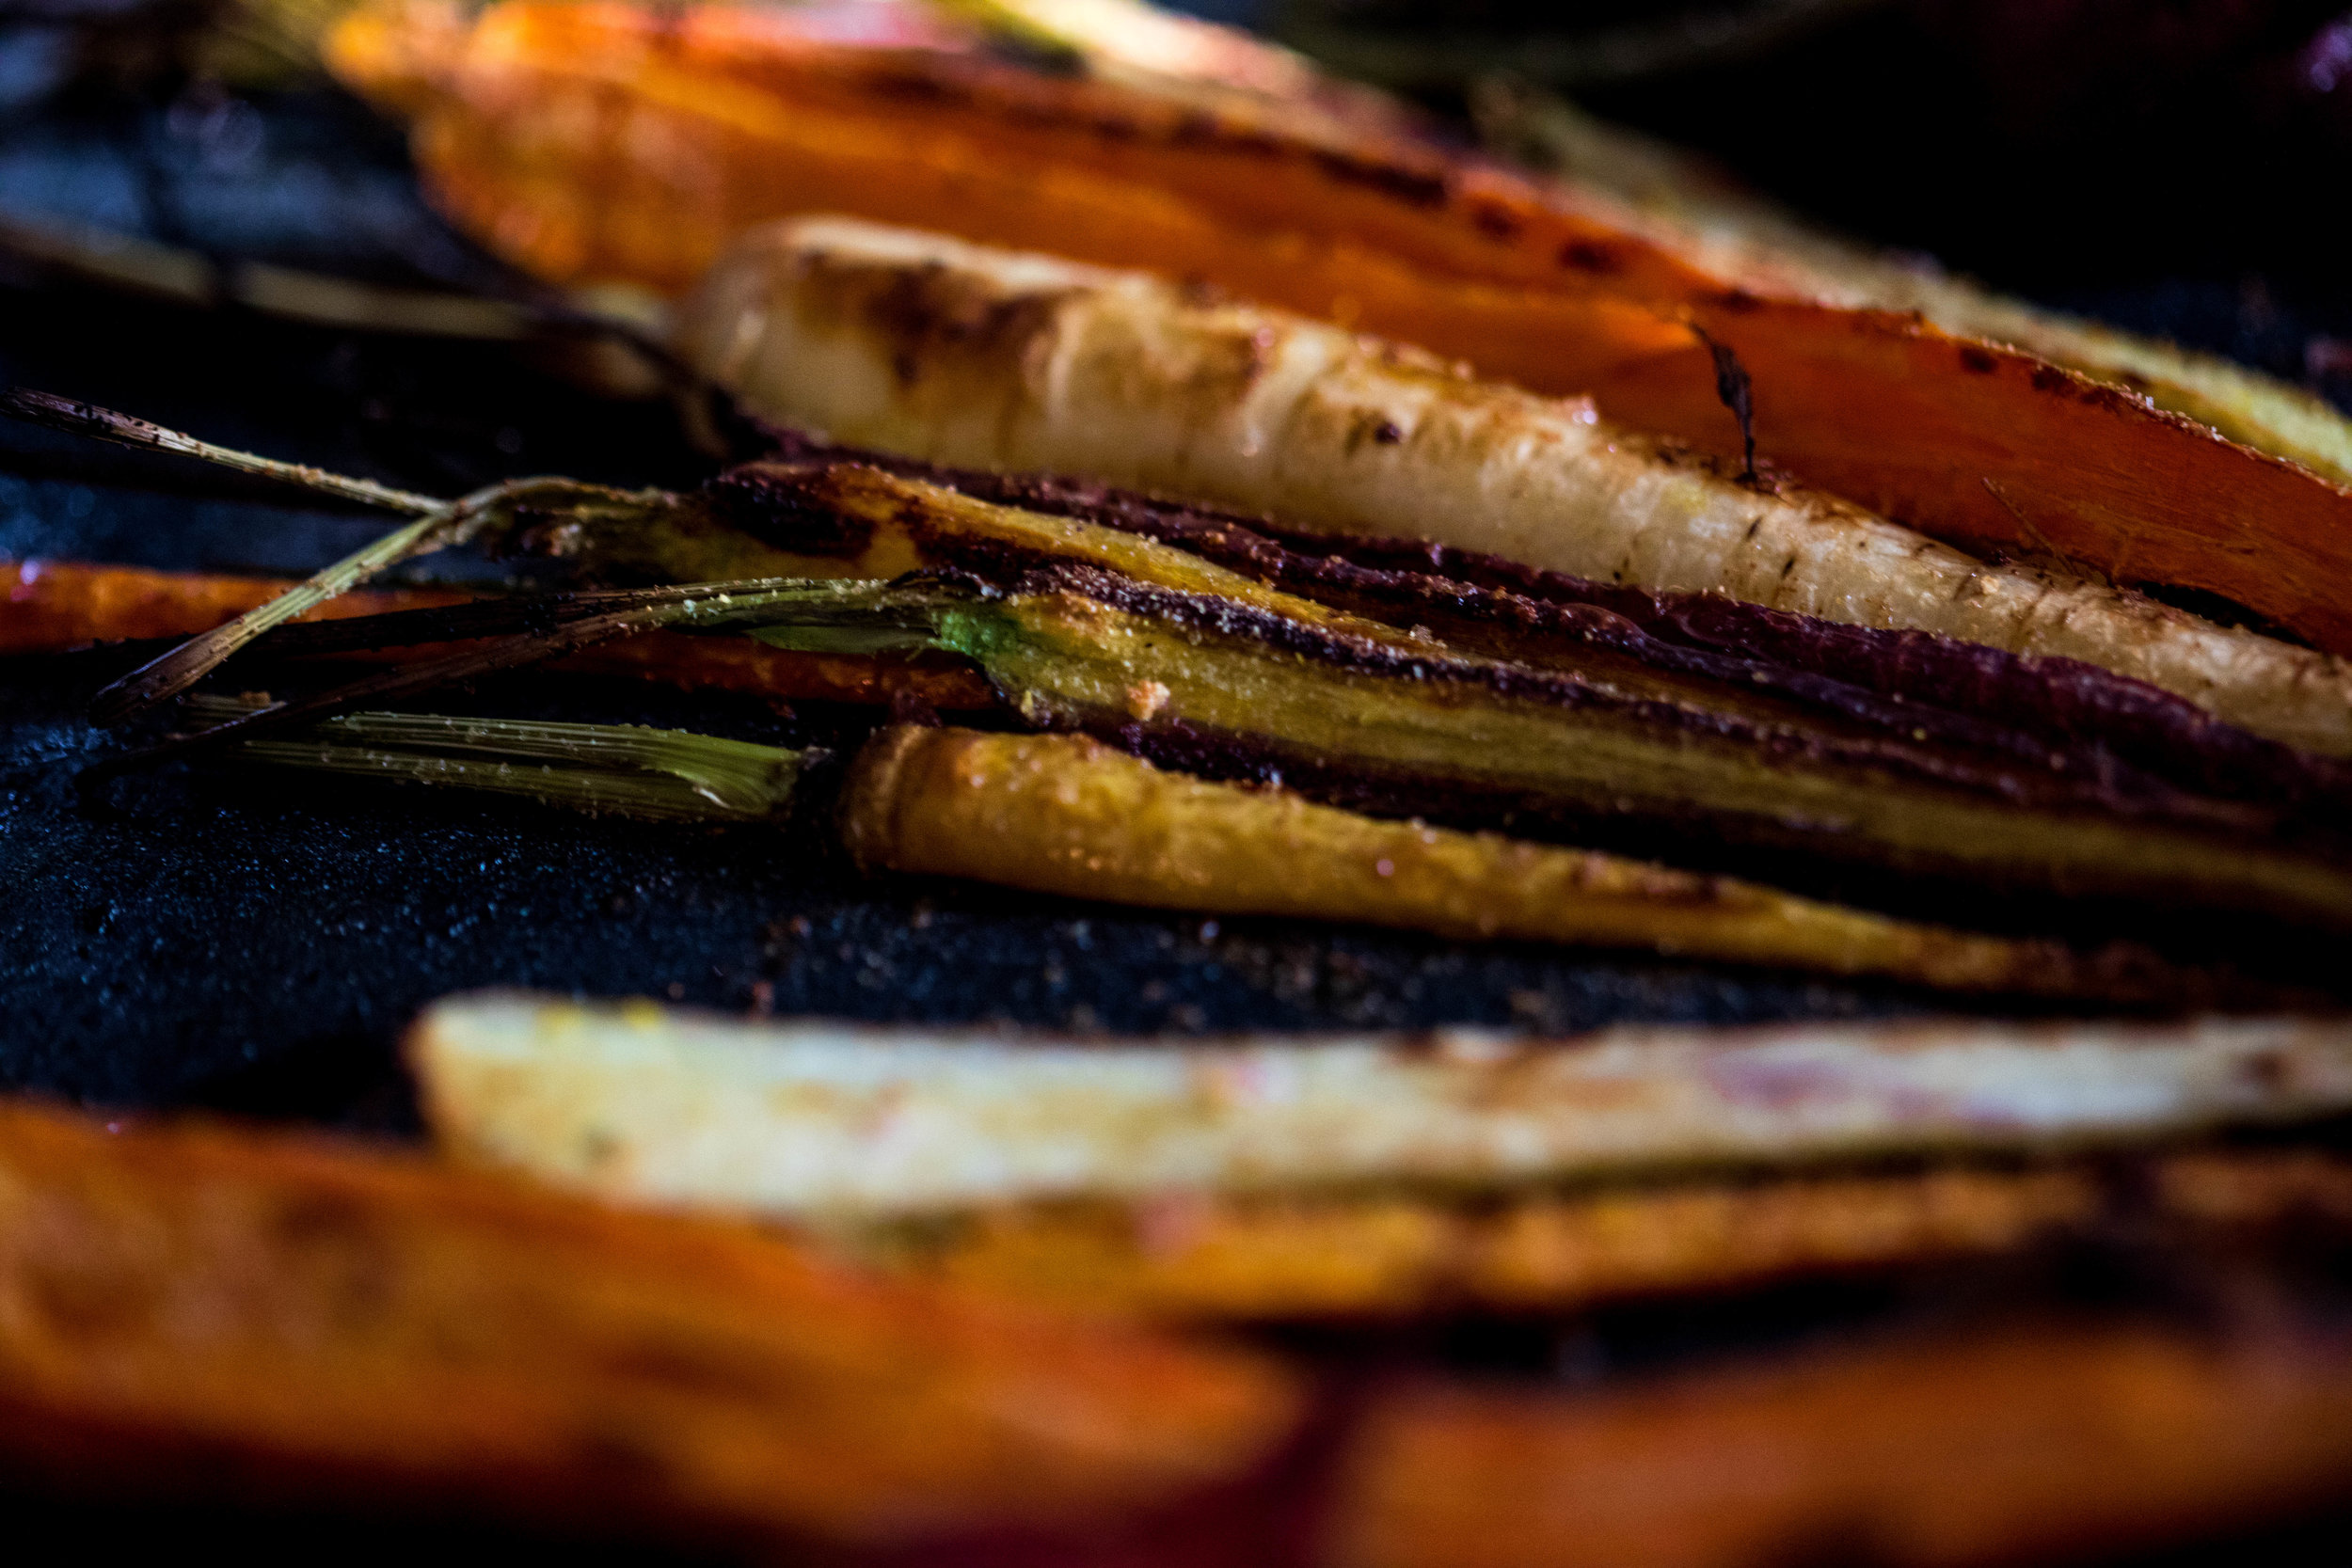 Roasted Root Vegetable Recipe with Harvesters Community Food Network